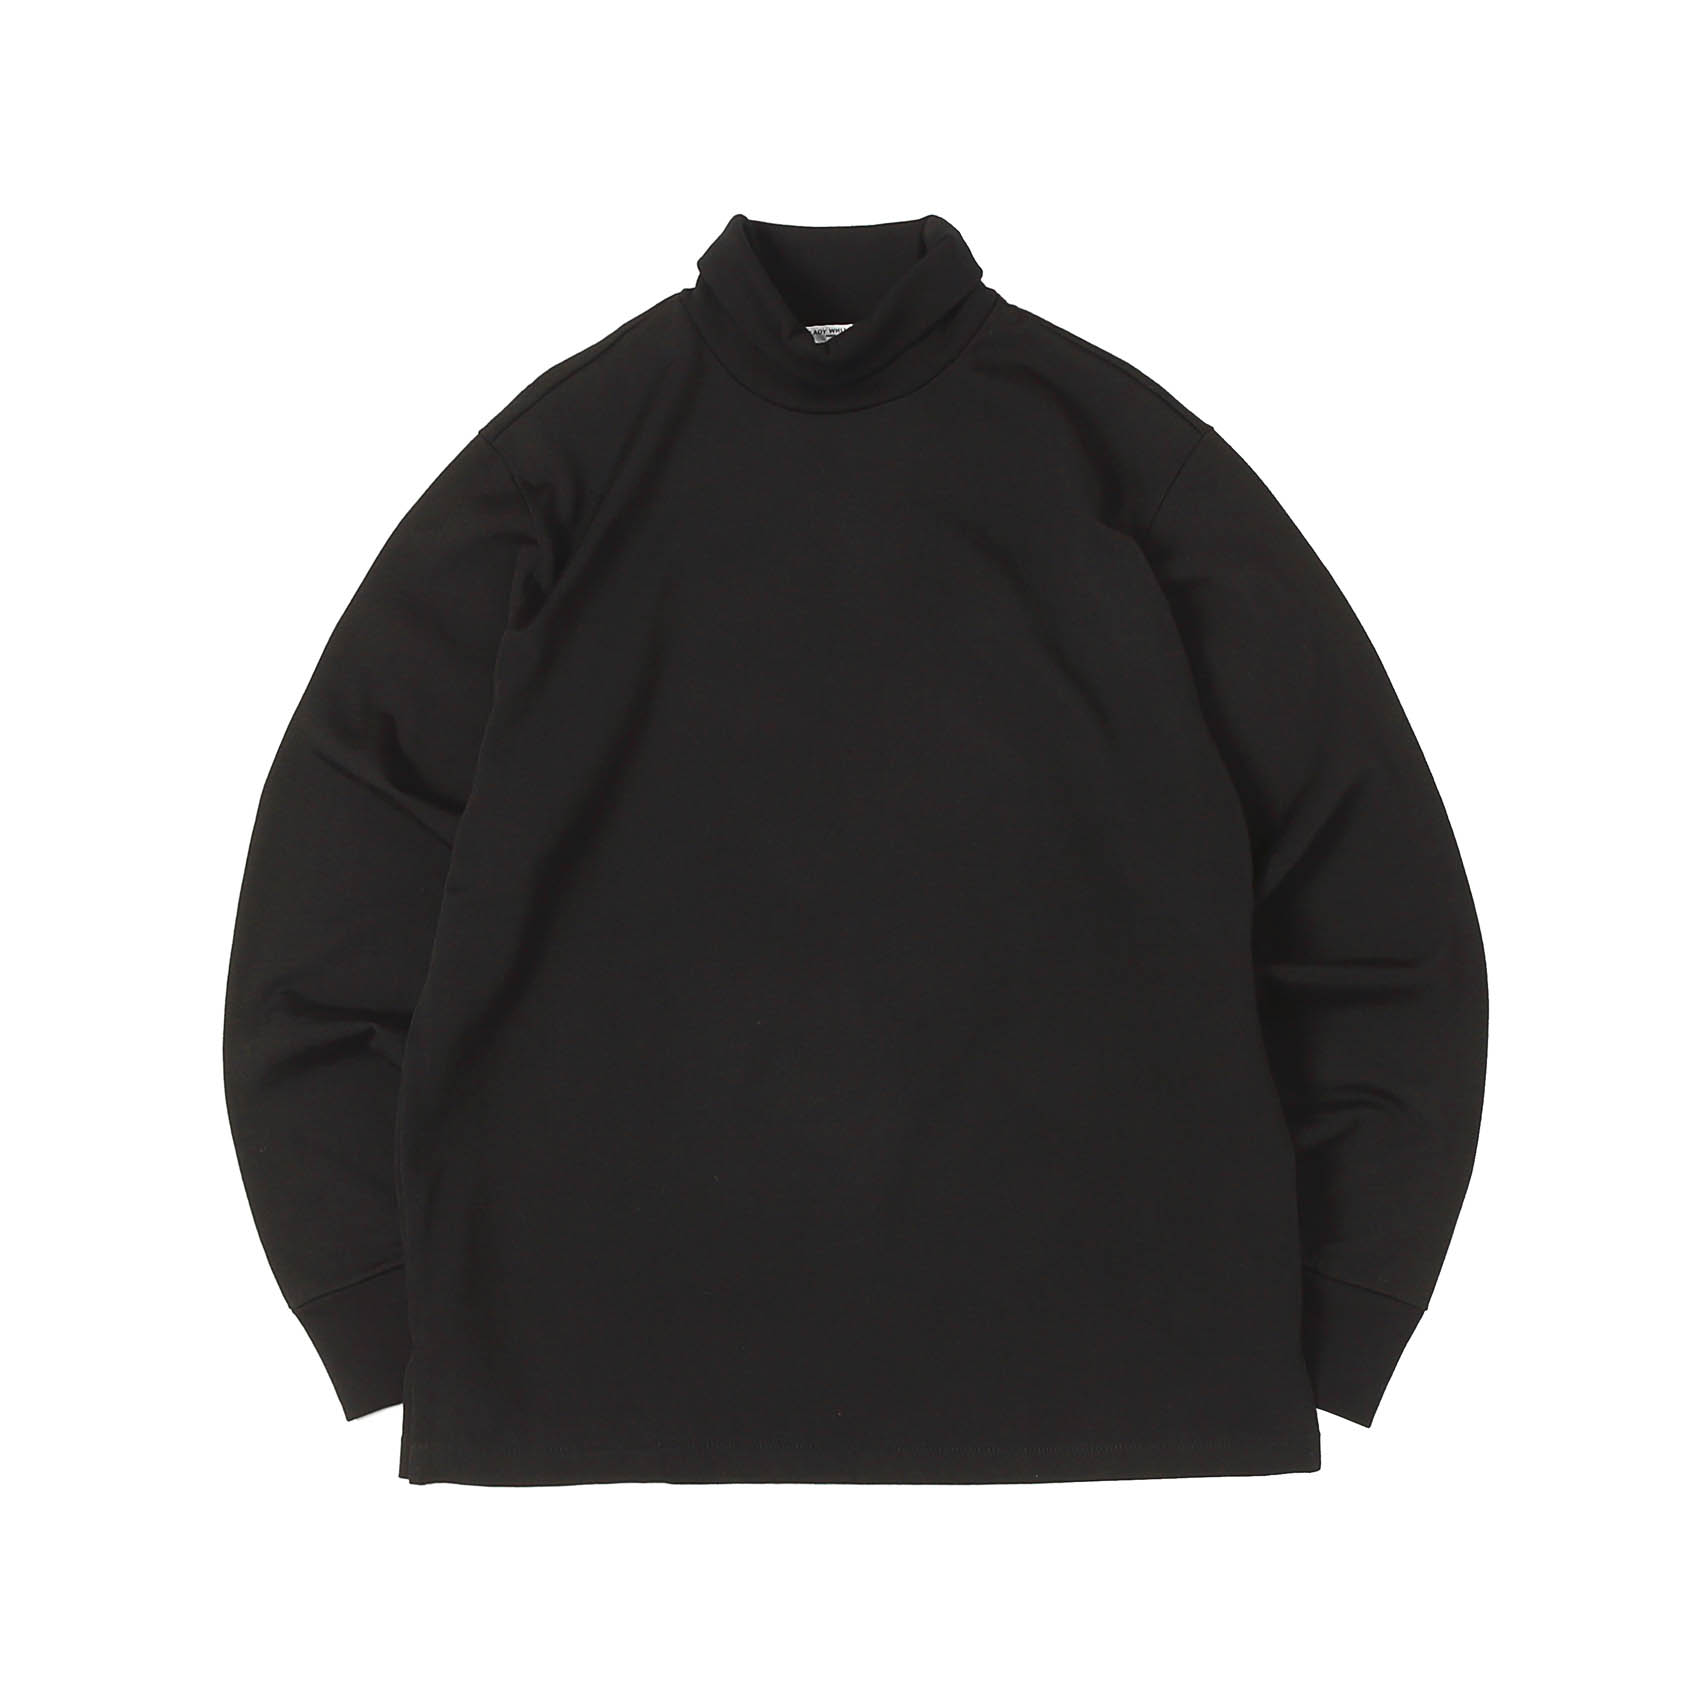 L/S NYLON TURTLENECK - BLACK